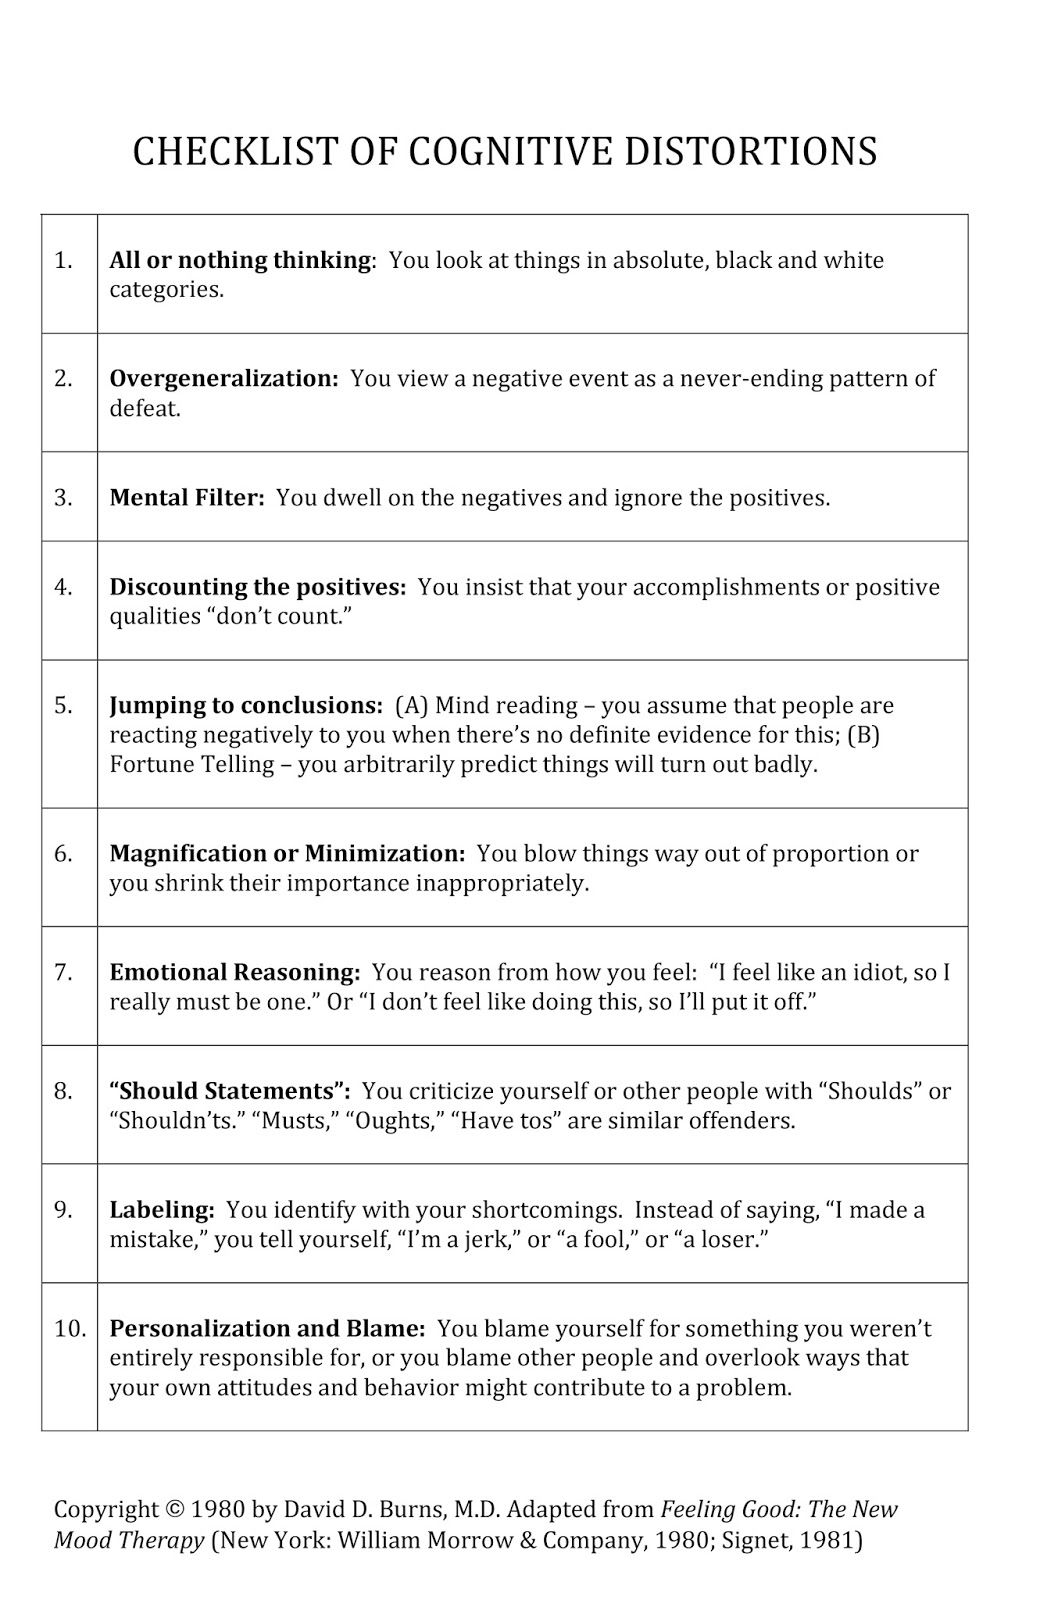 Healing Hope Cognitive Distortions – Cognitive Distortions Worksheet